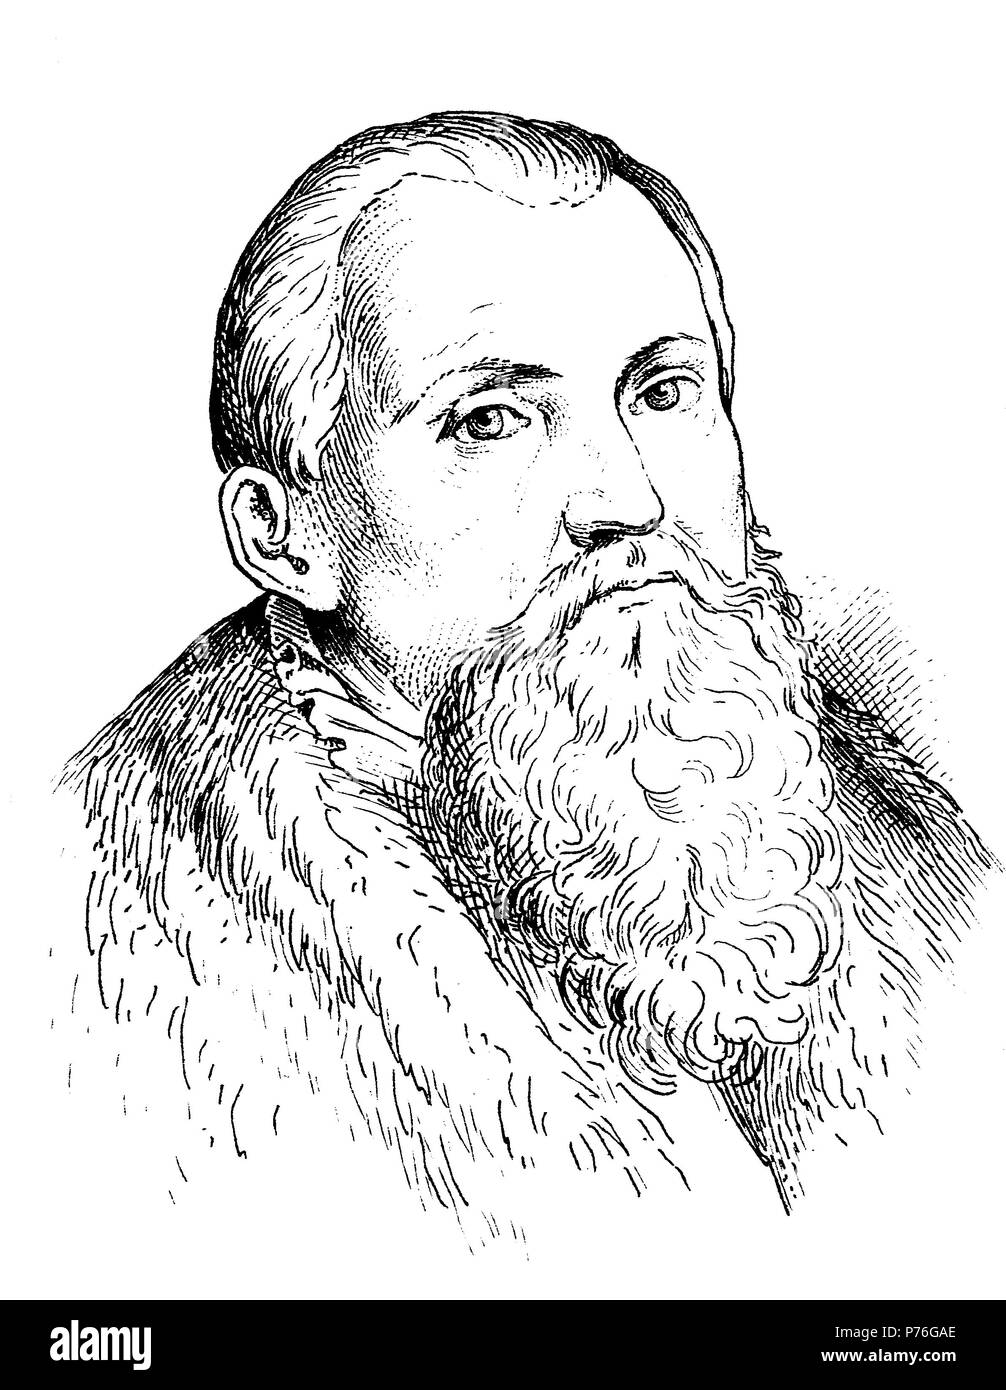 Lucas Cranach the Elder, Lucas Cranach der Ältere, a German Renaissance painter and printmaker in woodcut and engraving, digital improved reproduction of an original print from the year 1881 - Stock Image